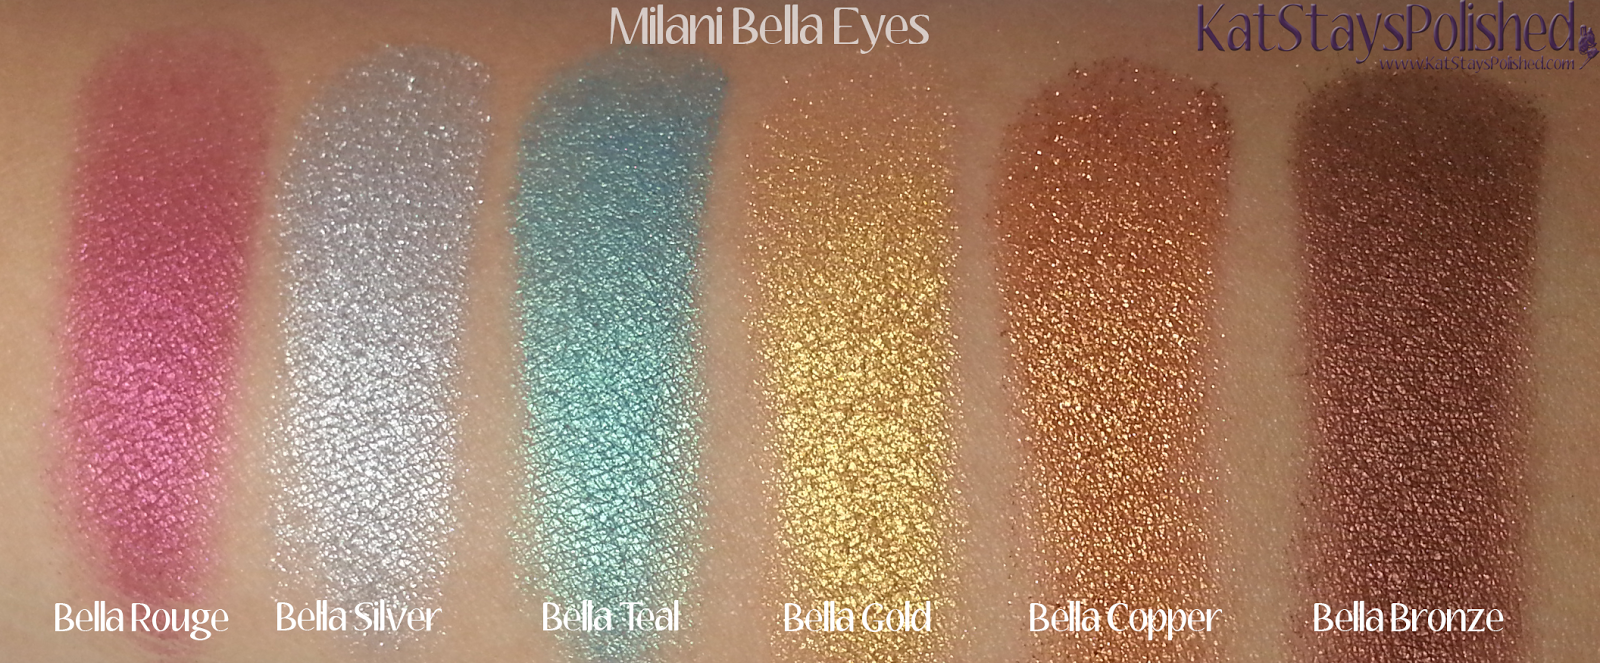 Milani Bella Eyes Gel Powder Eye Shadow - Swatches 19-24 | Kat Stays Polished